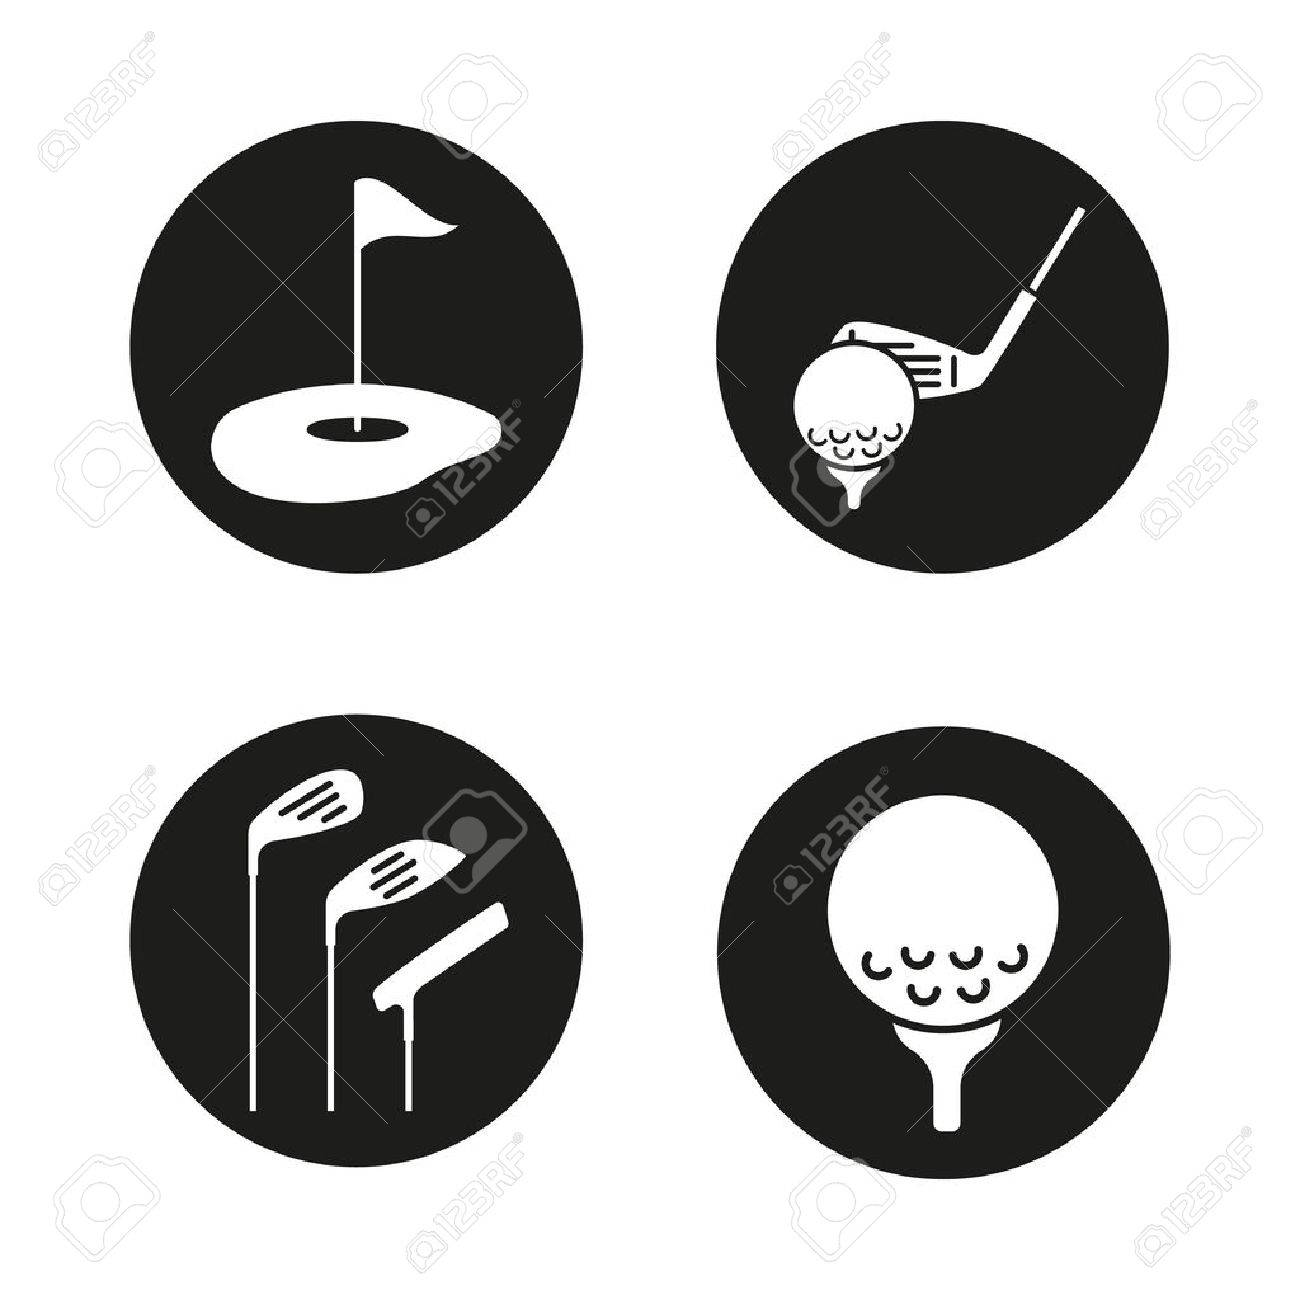 Golf Icons Set Golf Course Clubs Ball On Tee Vector White Royalty Free Cliparts Vectors And Stock Illustration Image 76252635